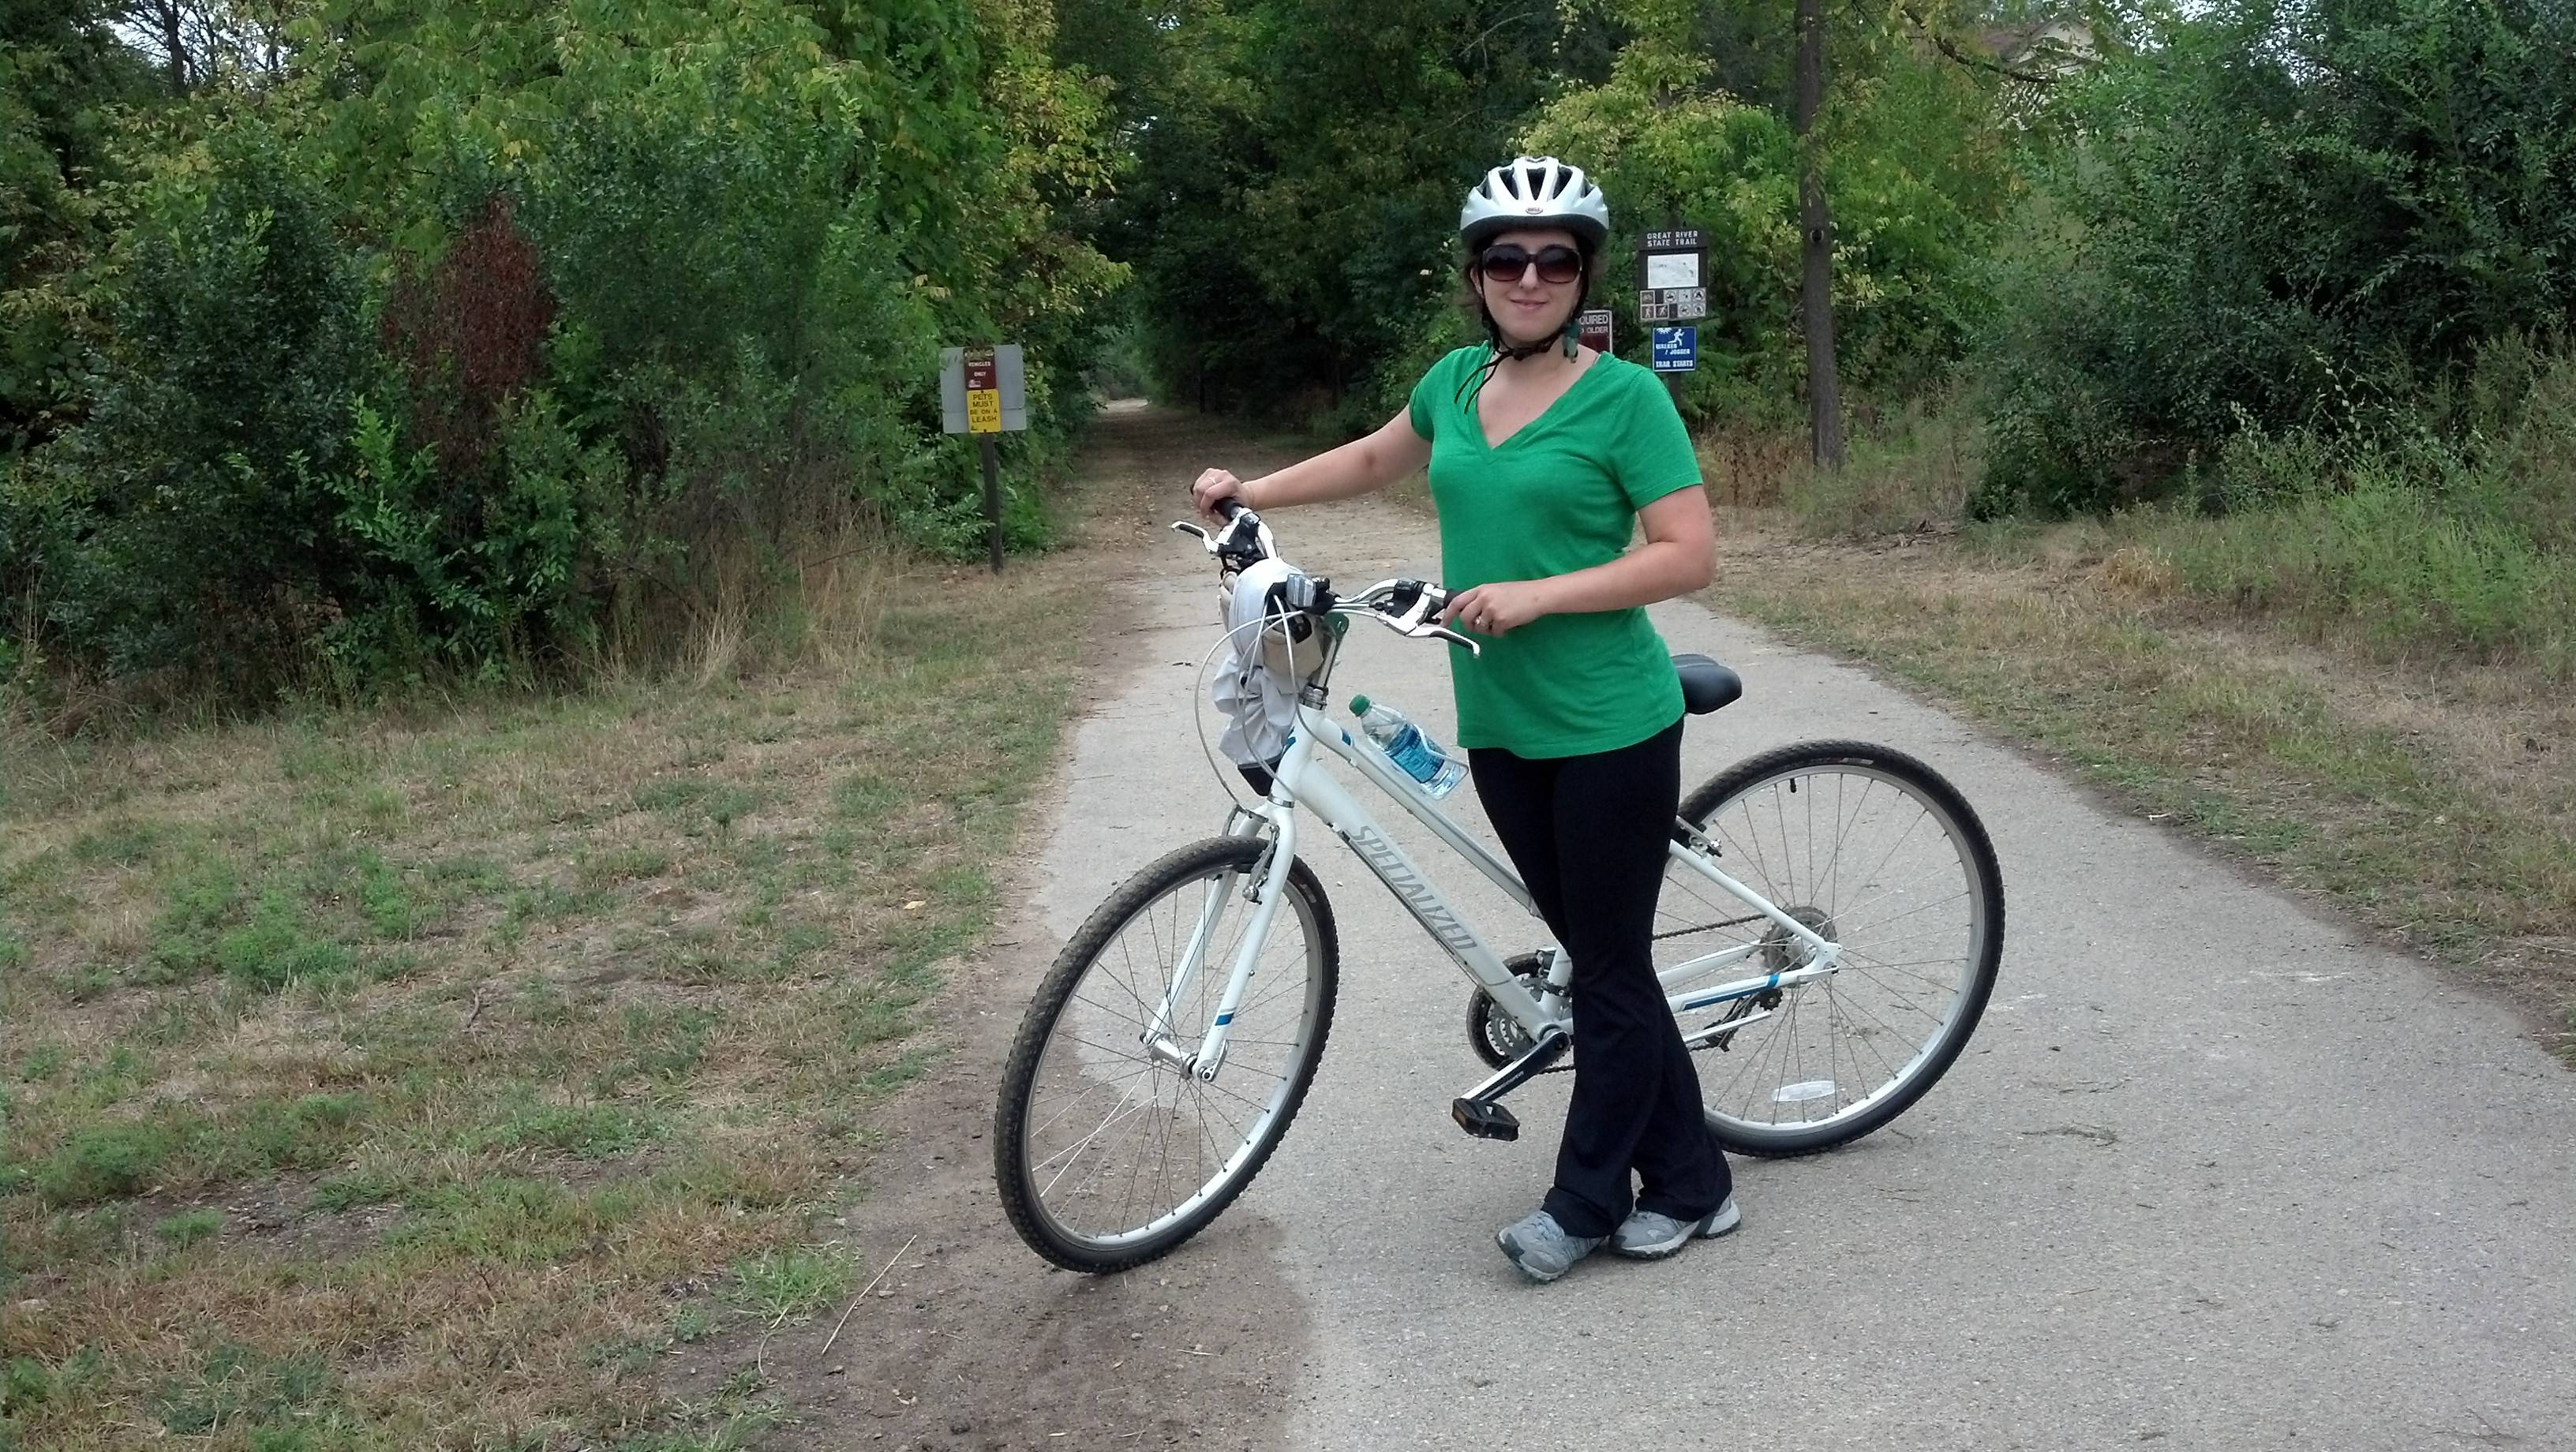 The Great River State Trail in Onalaska, Wis., offers 101 miles of bike paths, and there are trails for all ages and skill levels.